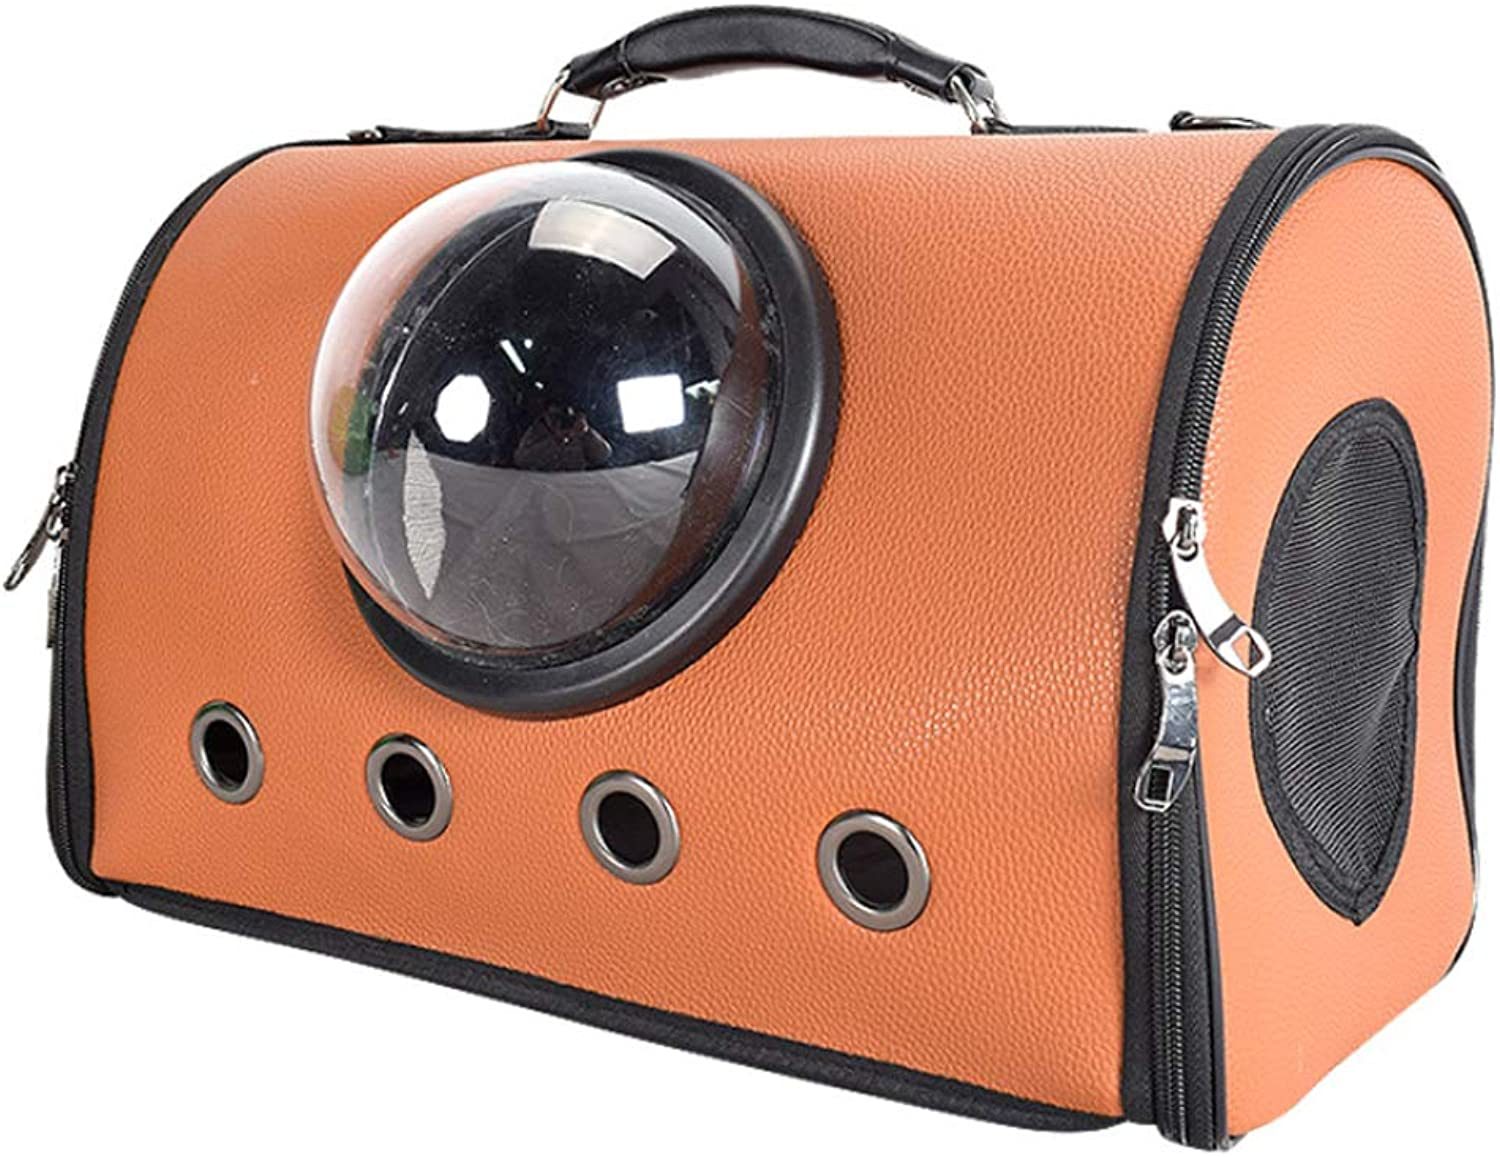 NDY Pet Supplies Out Yellow Brown orange Backpack Small Dog Breathable Portable Pu Bag Portable Cat Bag,orange